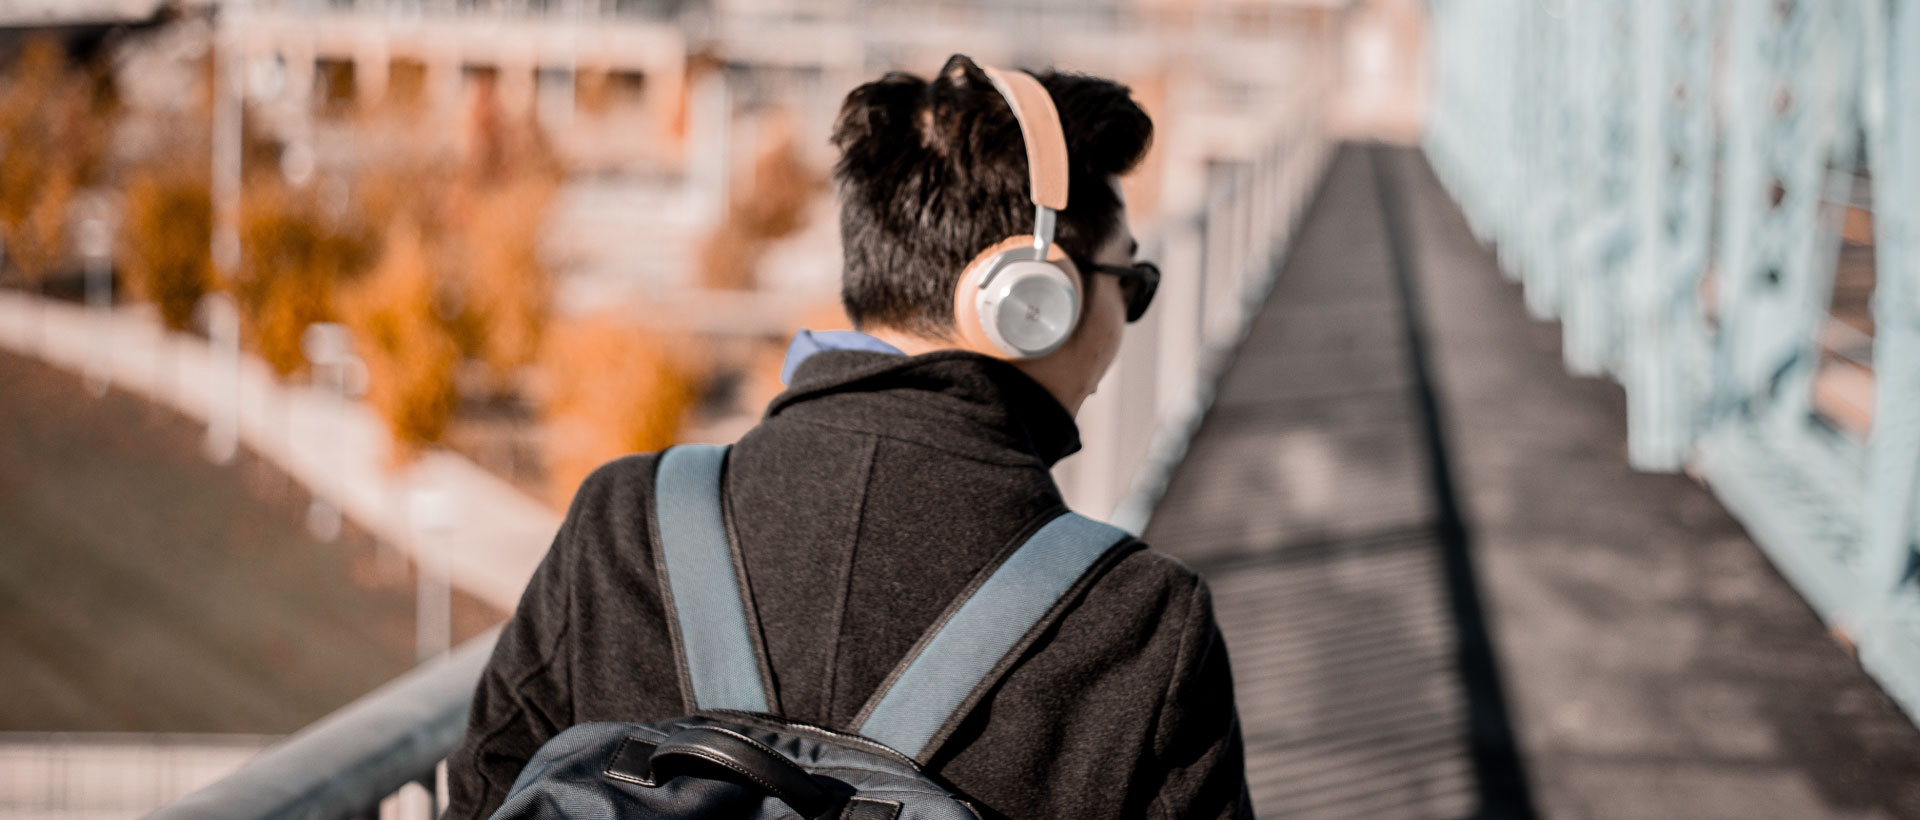 Musical Conversations with Jesus: A Free TGC19 Playlist